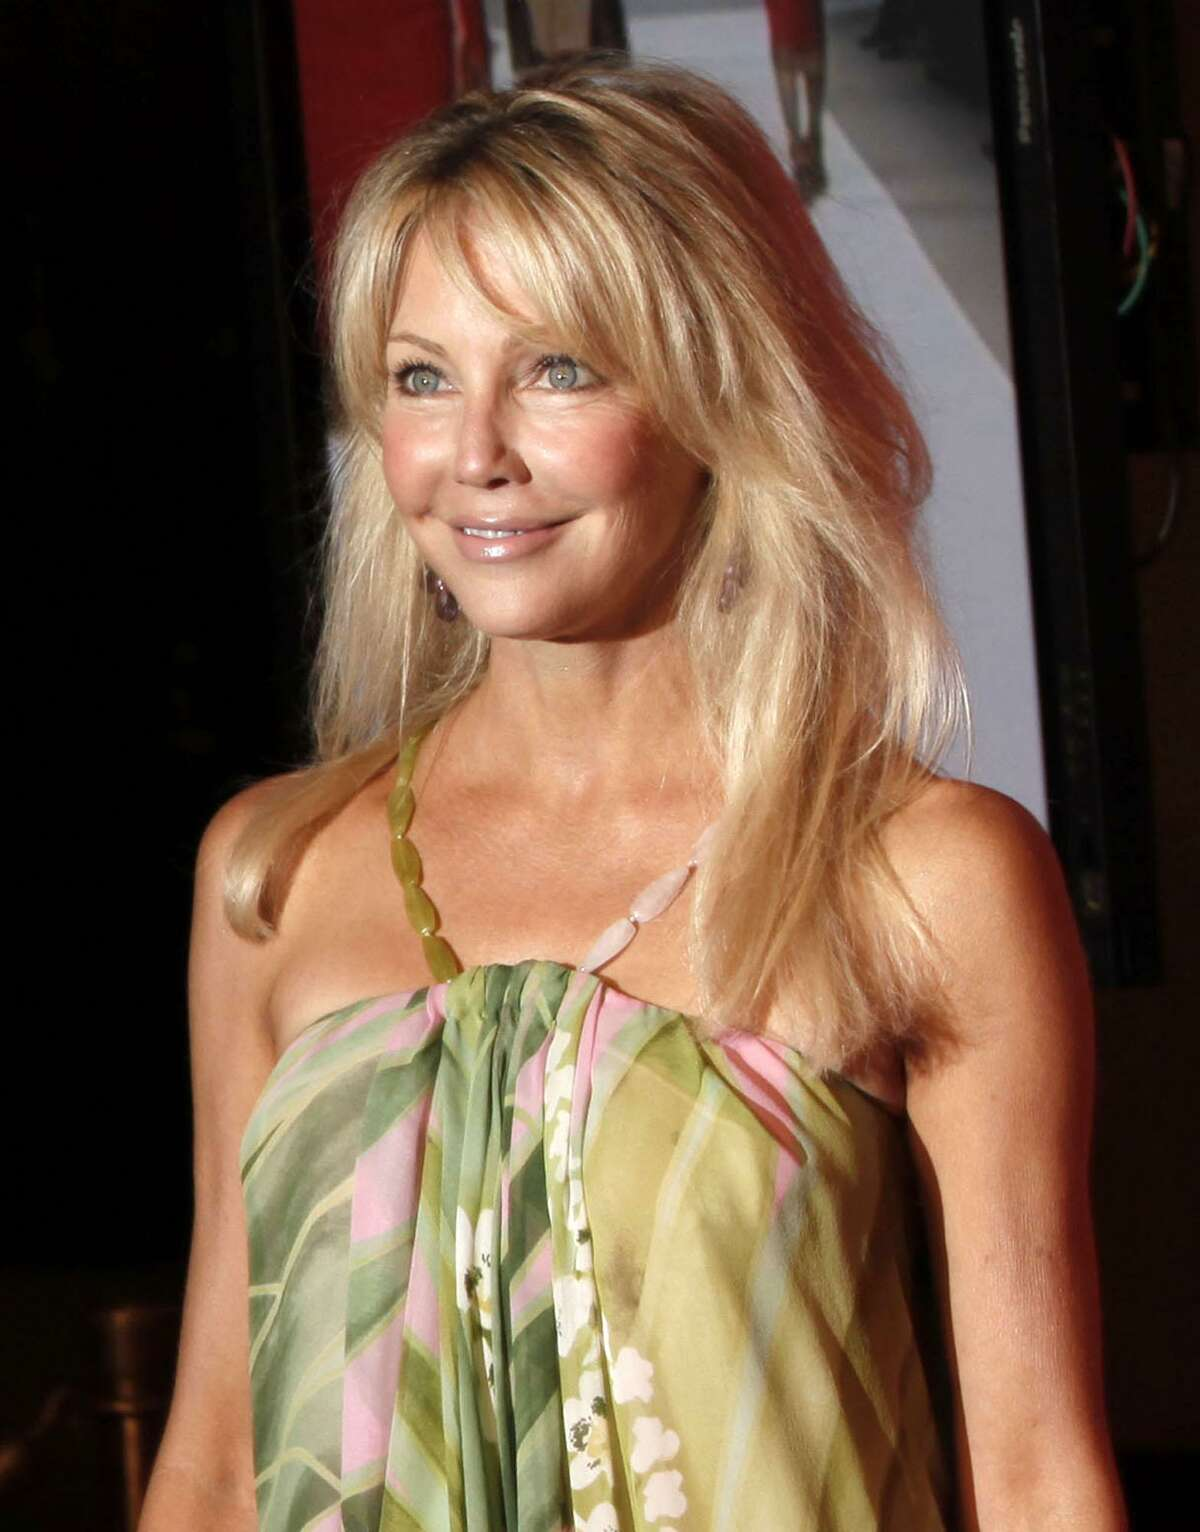 In this 2009 file photo, Heather Locklear arrives at the Women in Film Crystal Lucy Awards in Los Angeles. Paramedics responded to Locklear's home 35 miles northwest of Los Angeles for a medical emergency and transported a woman matching the actress' description as a precautionary measure, authorities said Thursday. (Associated Press, file)